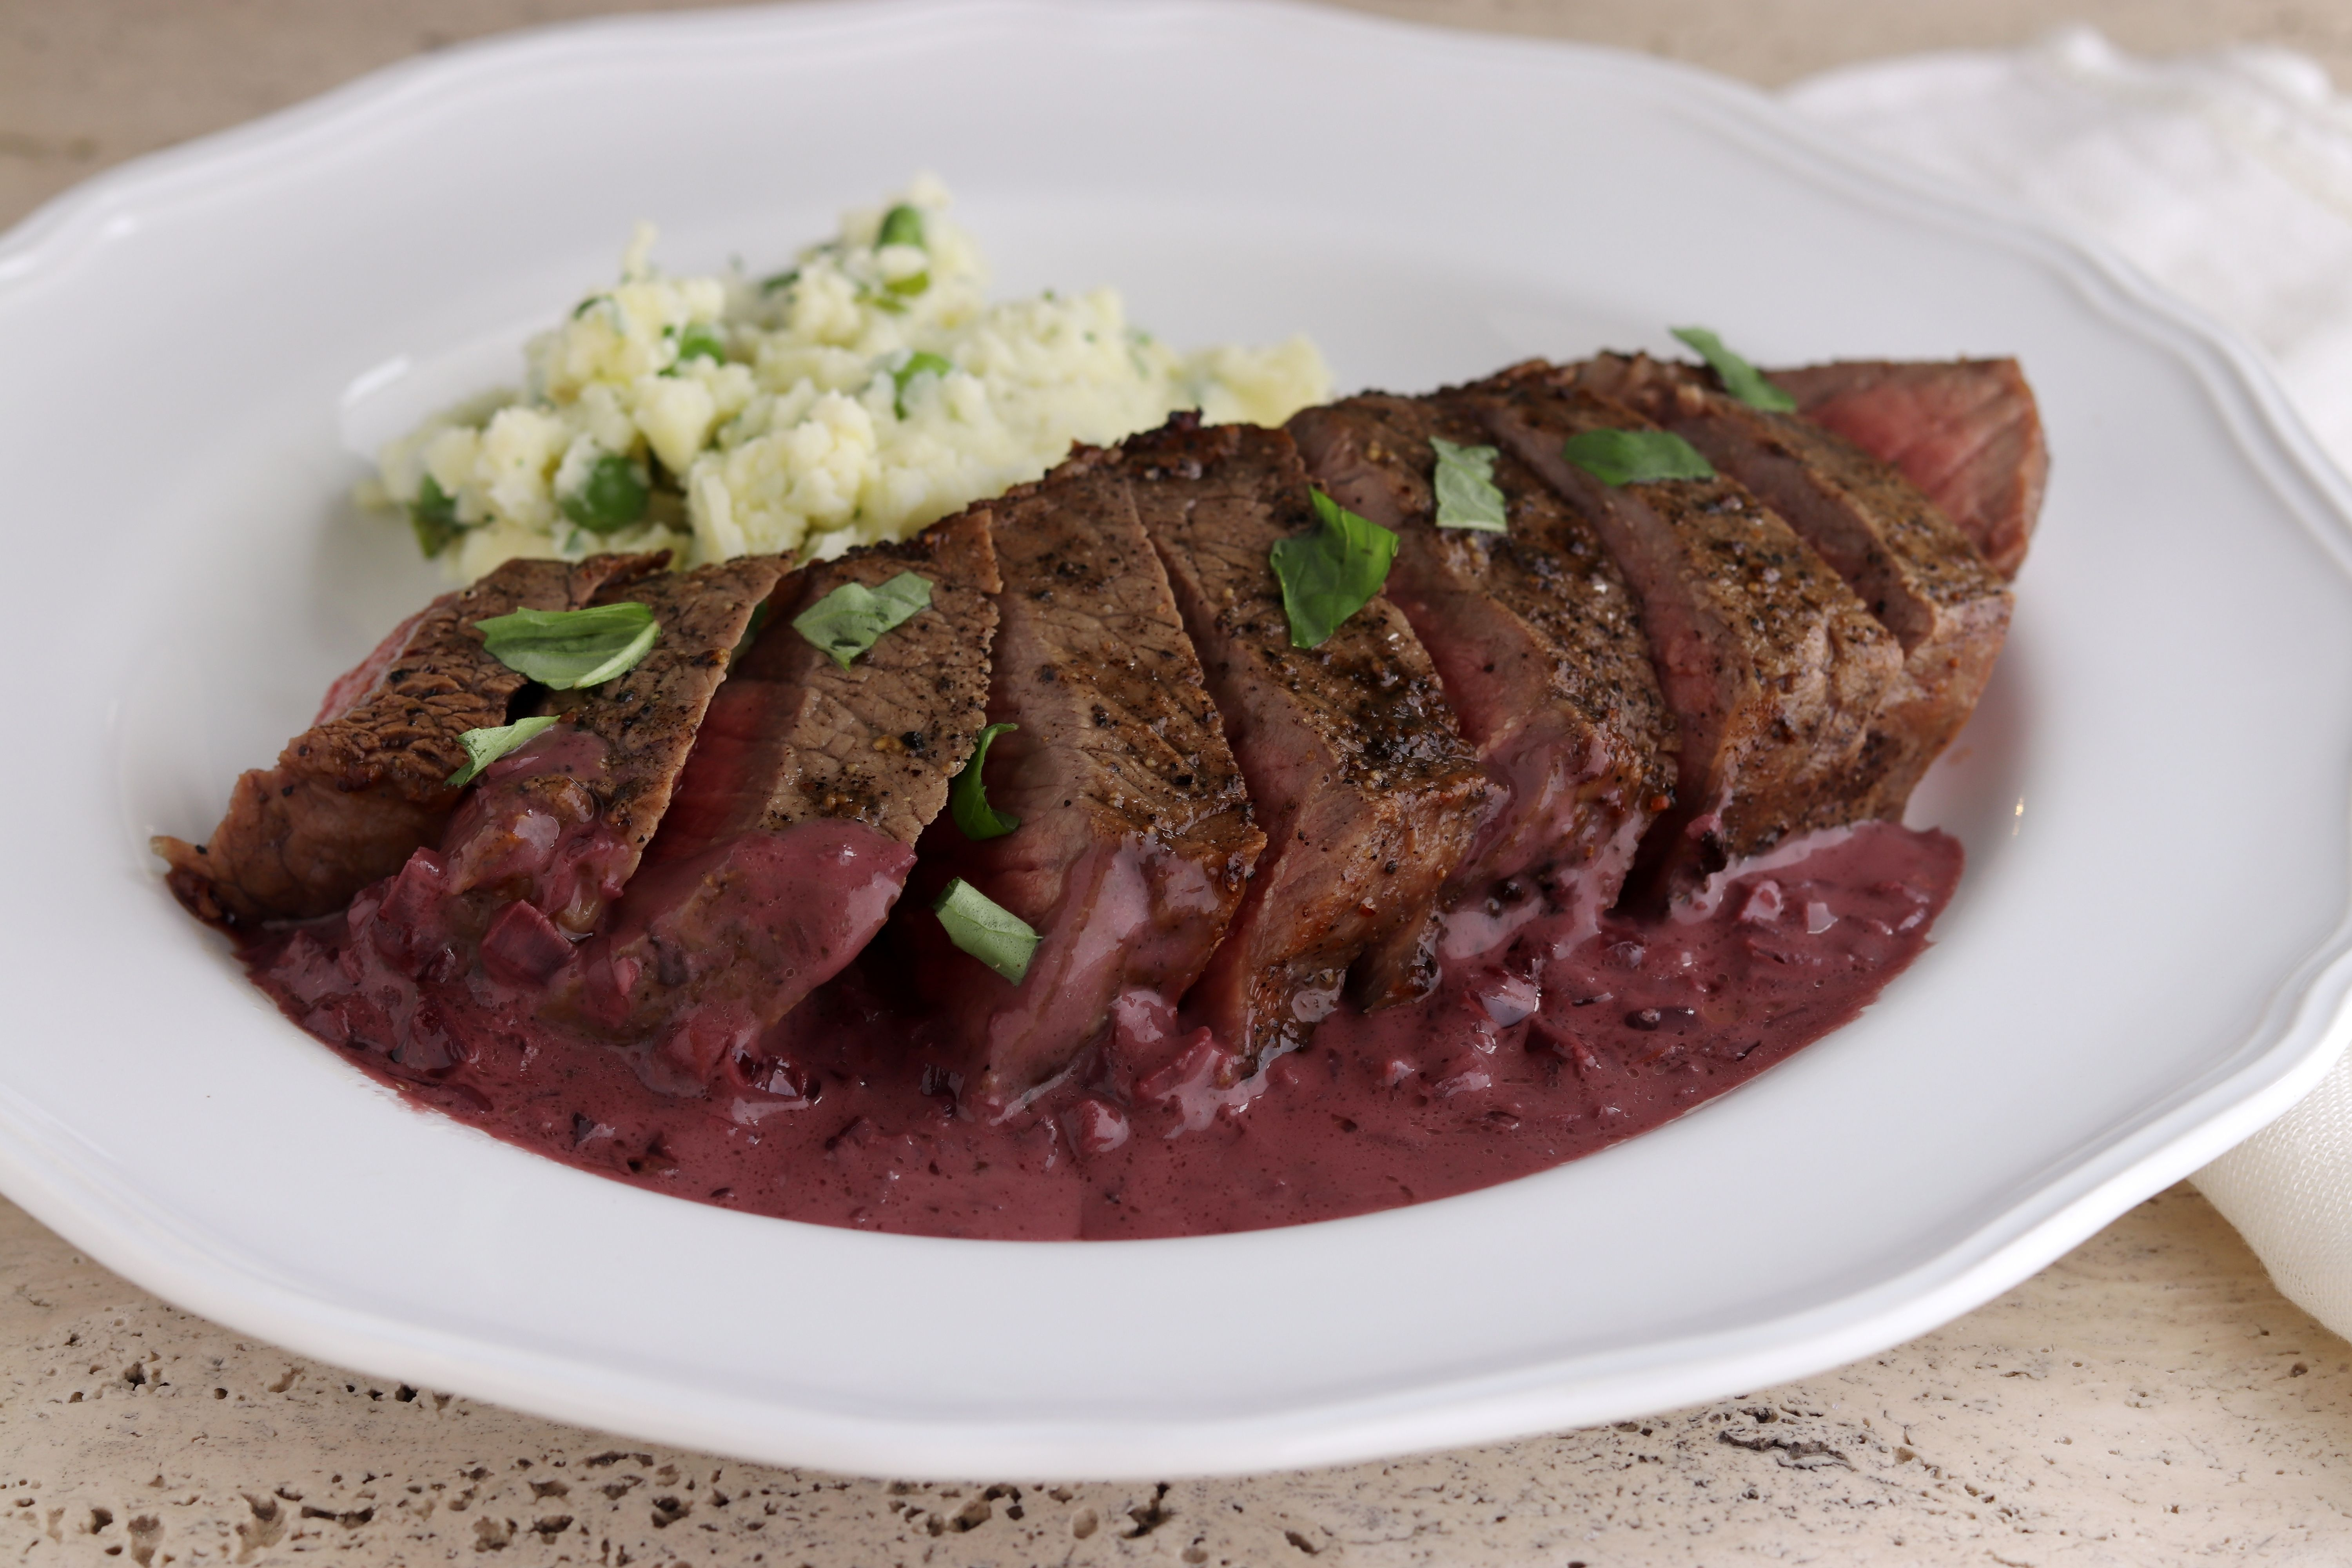 Air Fried New York Strip Steak with Red Wine Sauce